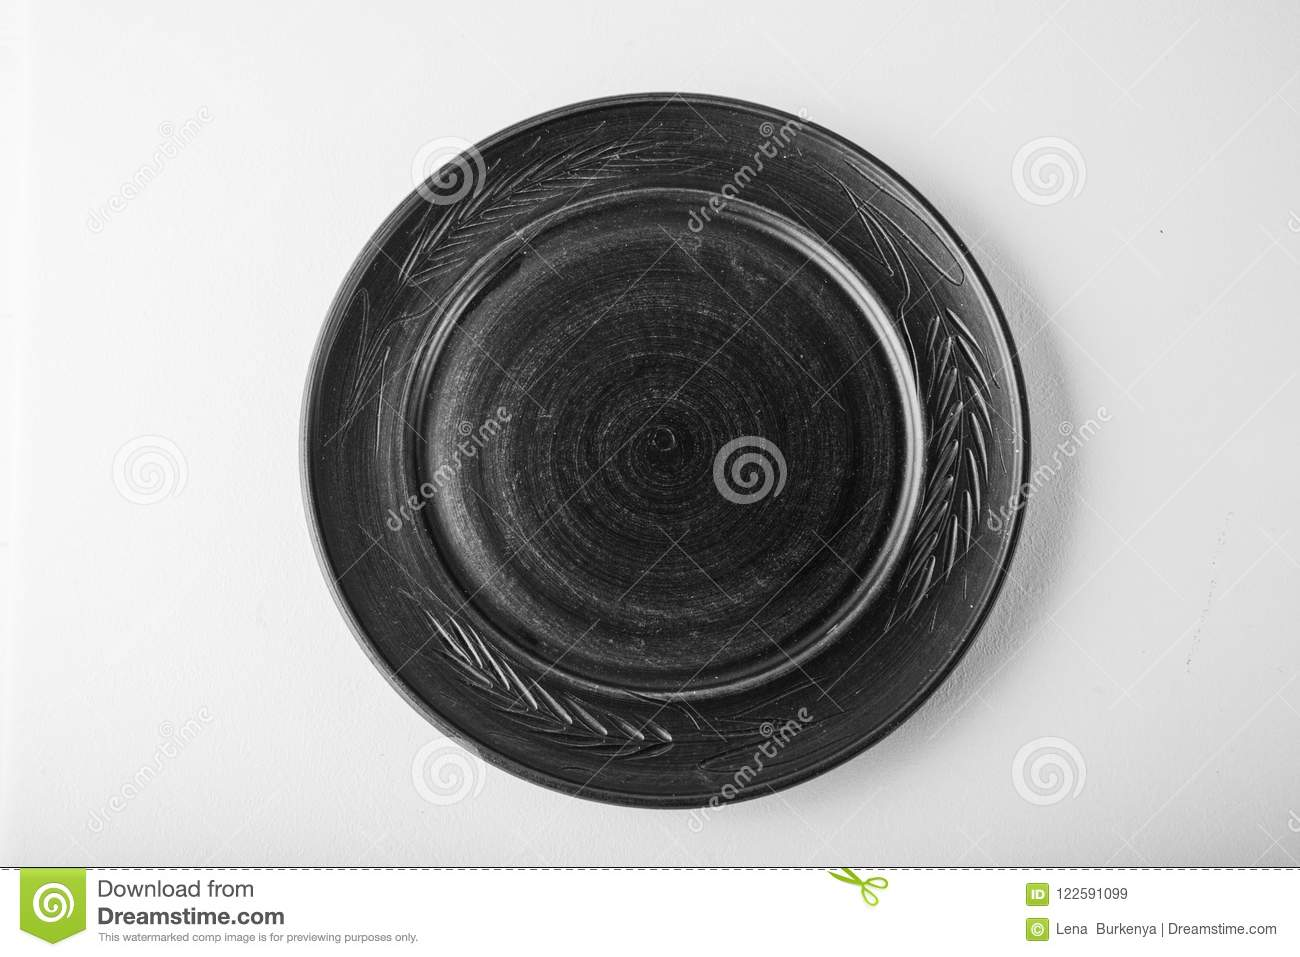 Monochromatic image. Top view of a black pastel plate on a pastel white background. Minimalism food photography. Geometric style.